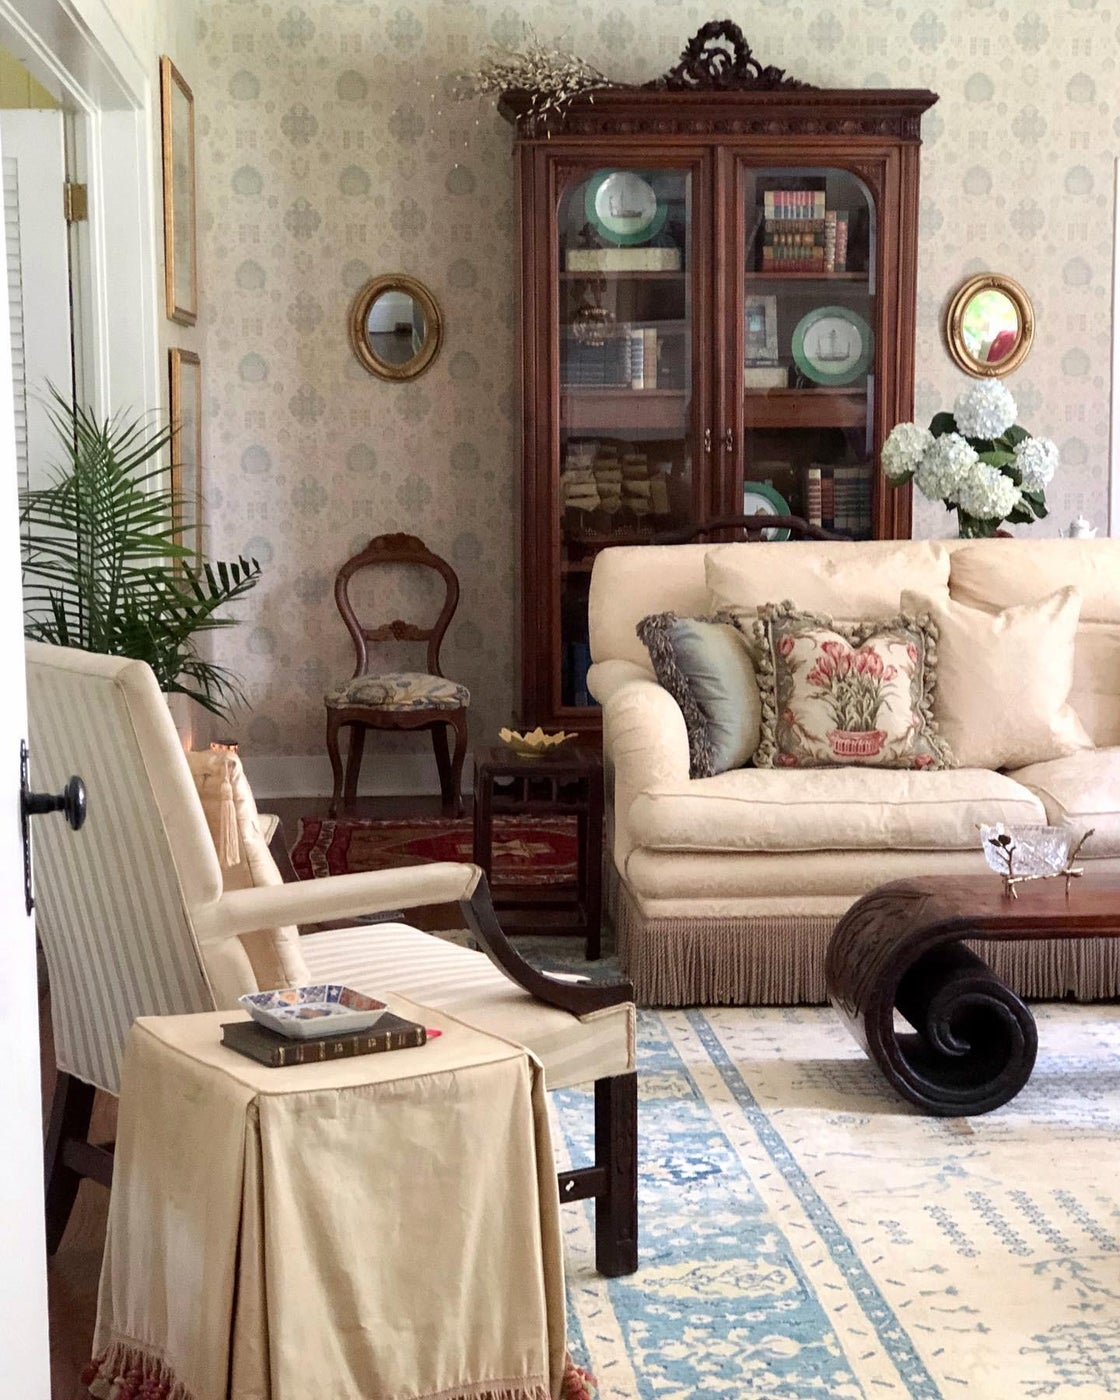 This elegant 1930's colonial cottage is overflowing with charm.  Original historic wallpapers were carefully preserved to set a pretty backdrop for antiques, family heirlooms, and personal collections.